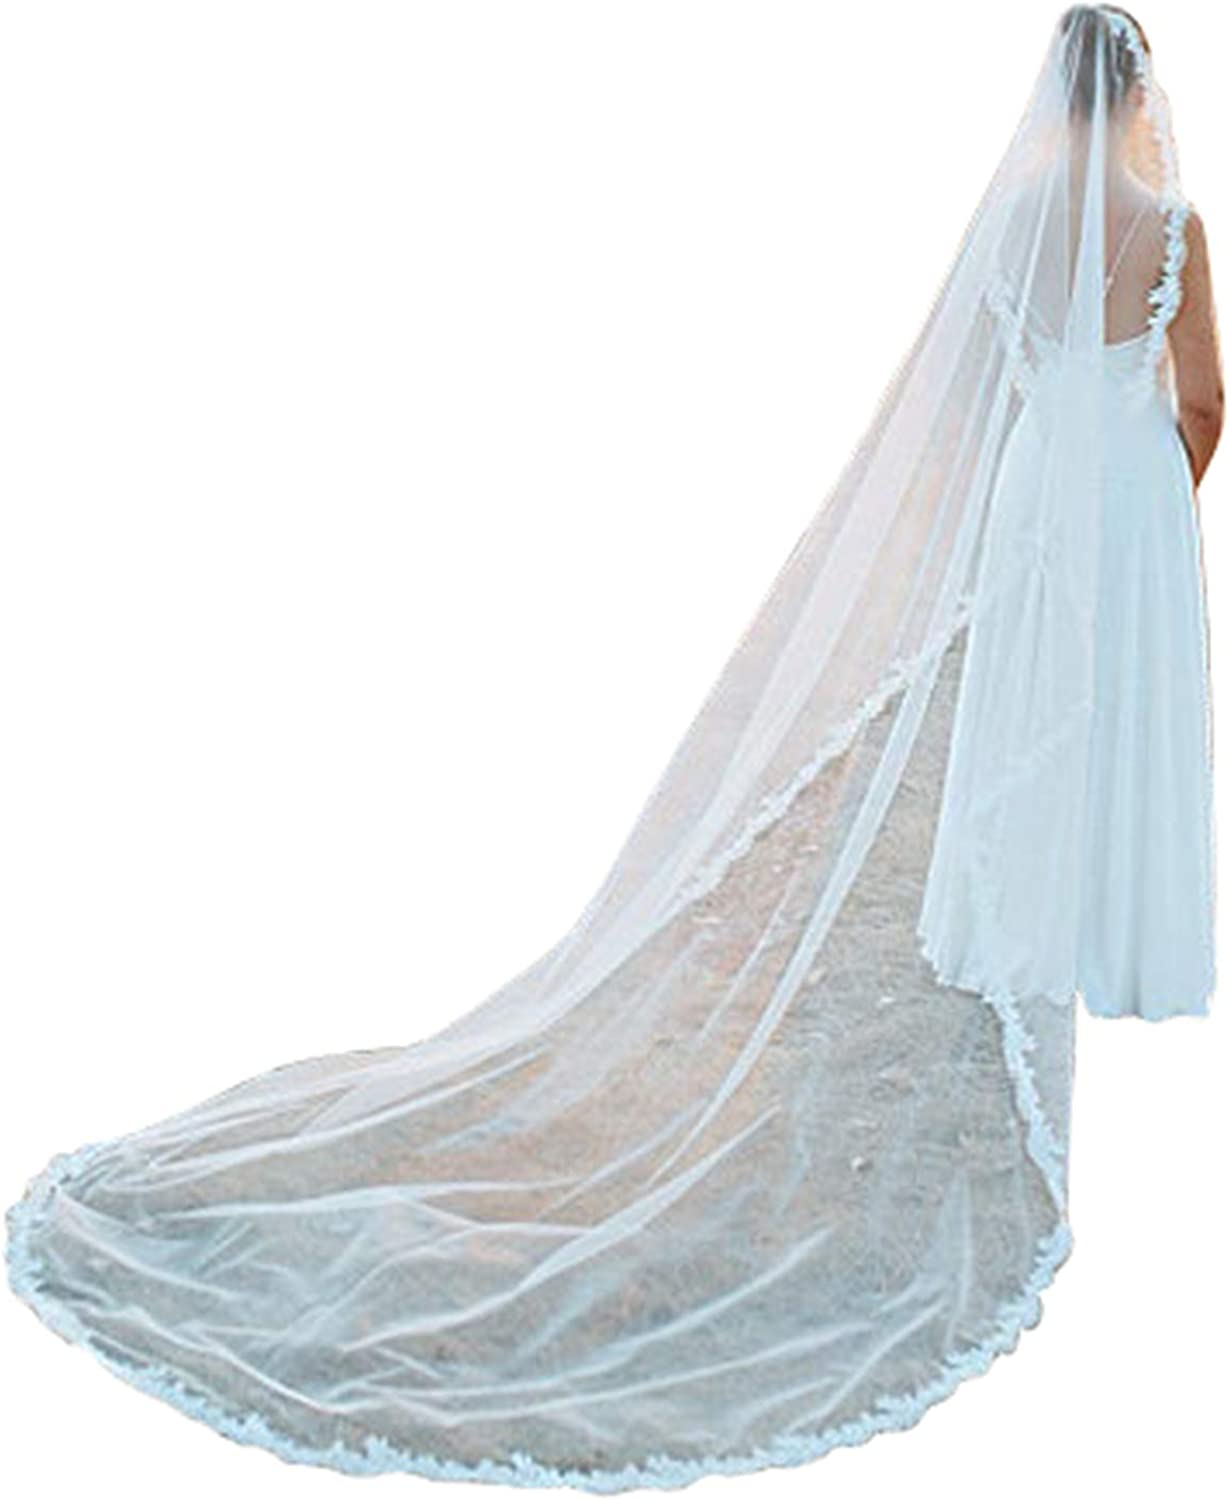 Lace Wedding Veils for Brides 1 Tier Ivory Cathedral Length with Comb